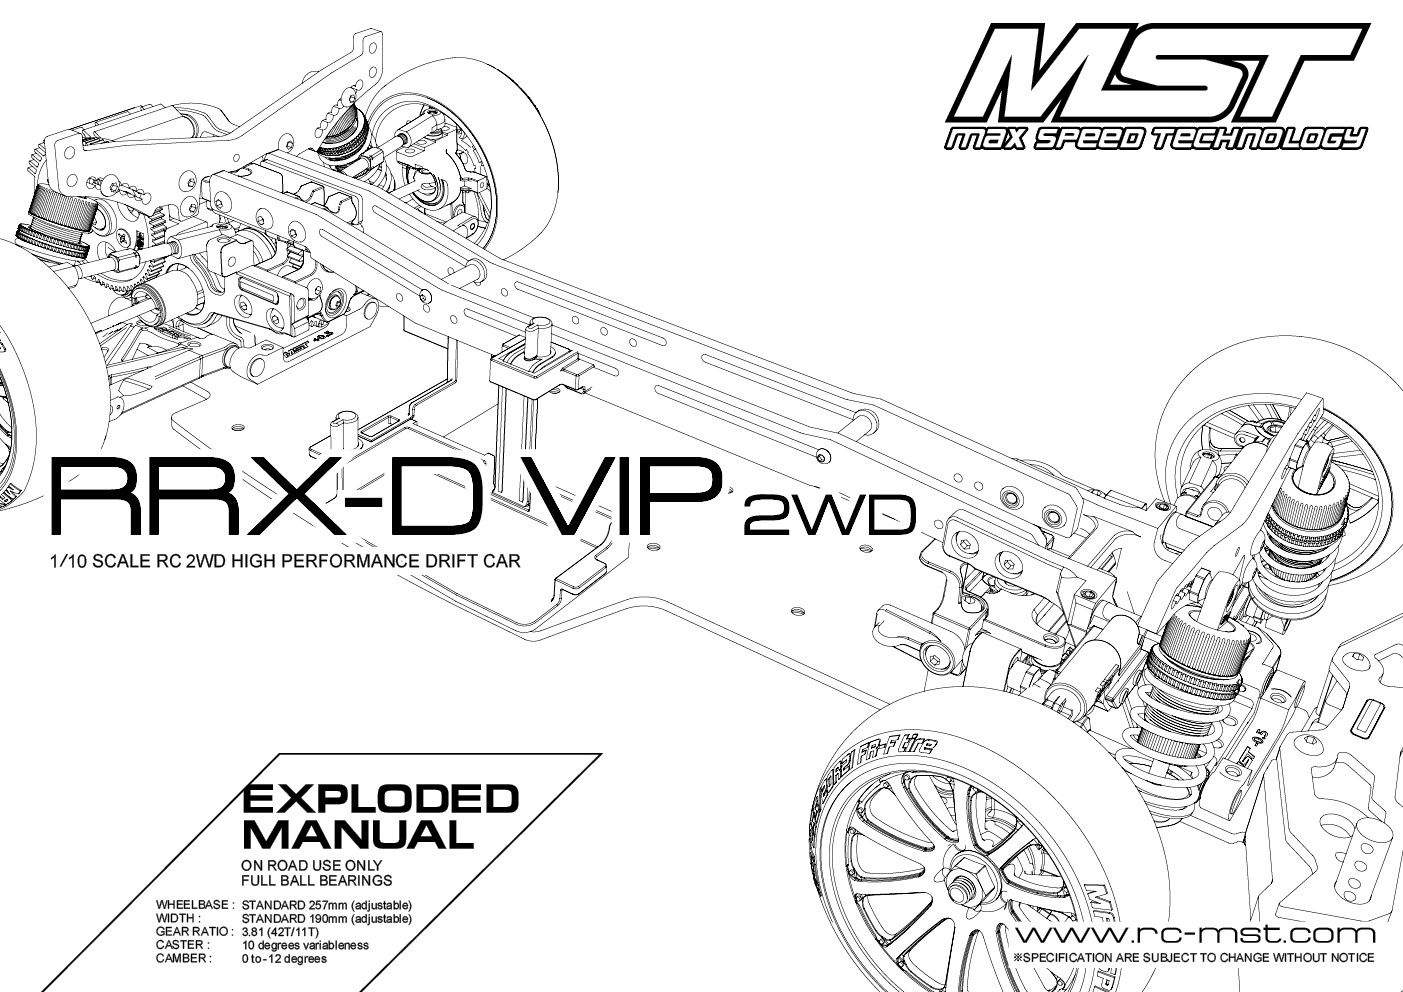 hight resolution of rrx d vip 2wd exploded manual